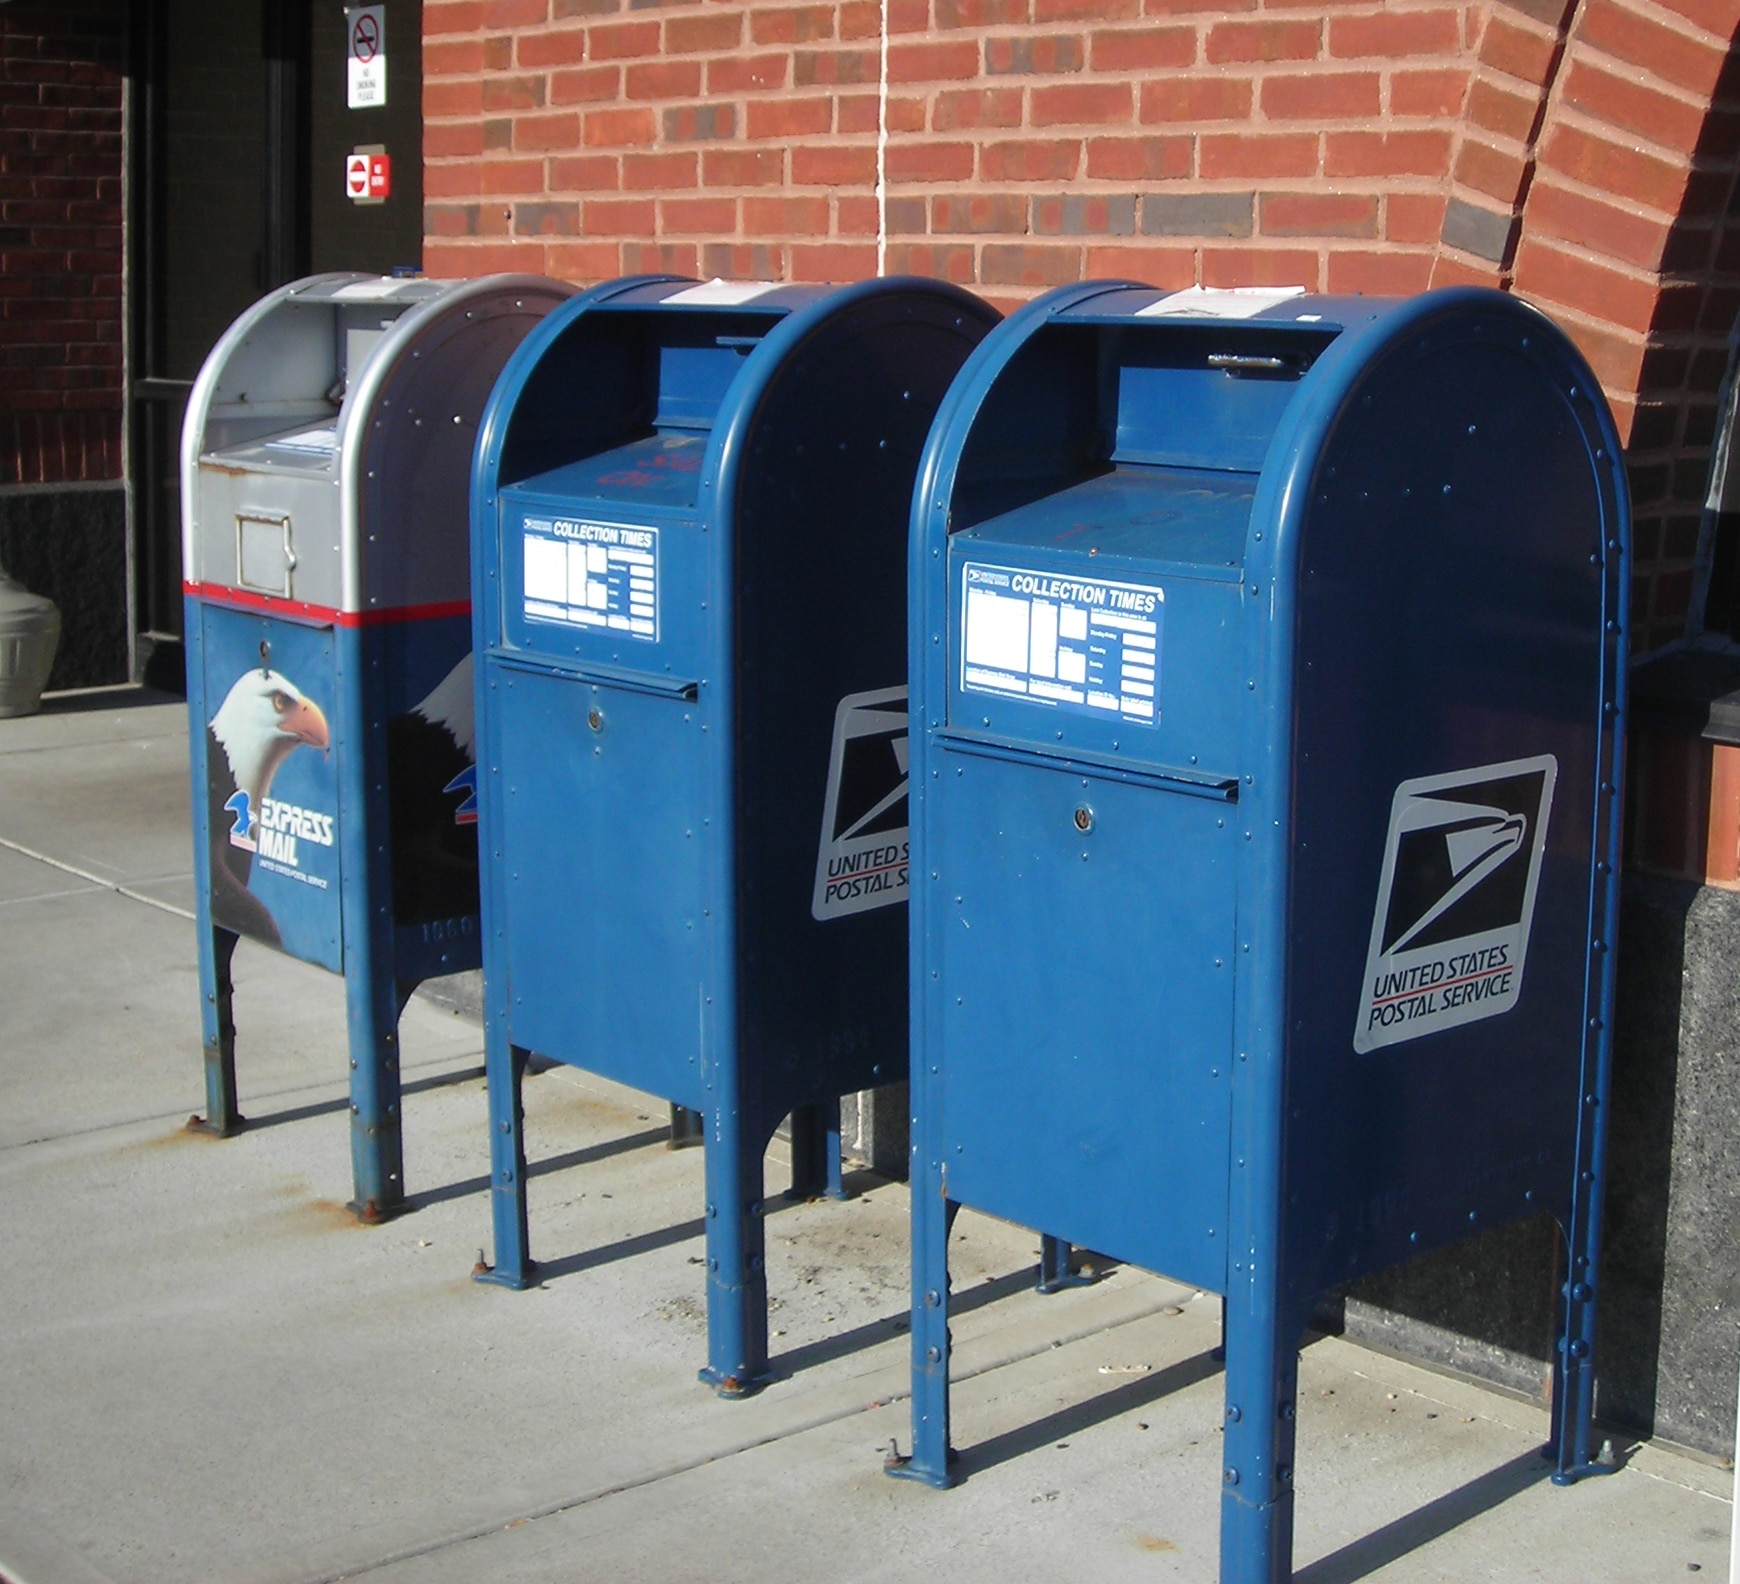 Postmaster freezes plan for controversial changes, but CT Dems say that's not enough